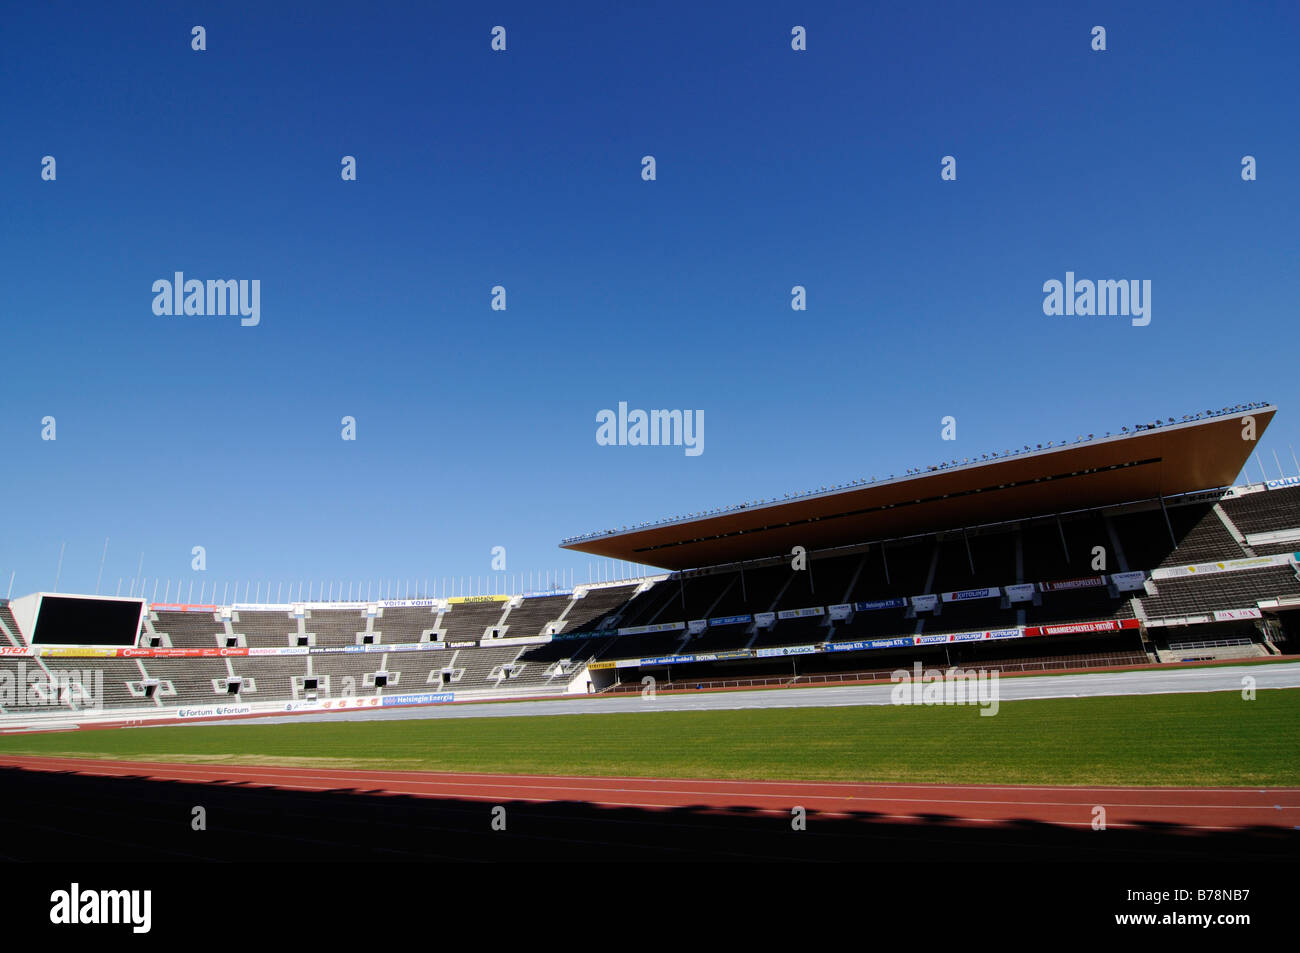 Olympic stadium, partial view, Helsinki, Finland, Europe - Stock Image